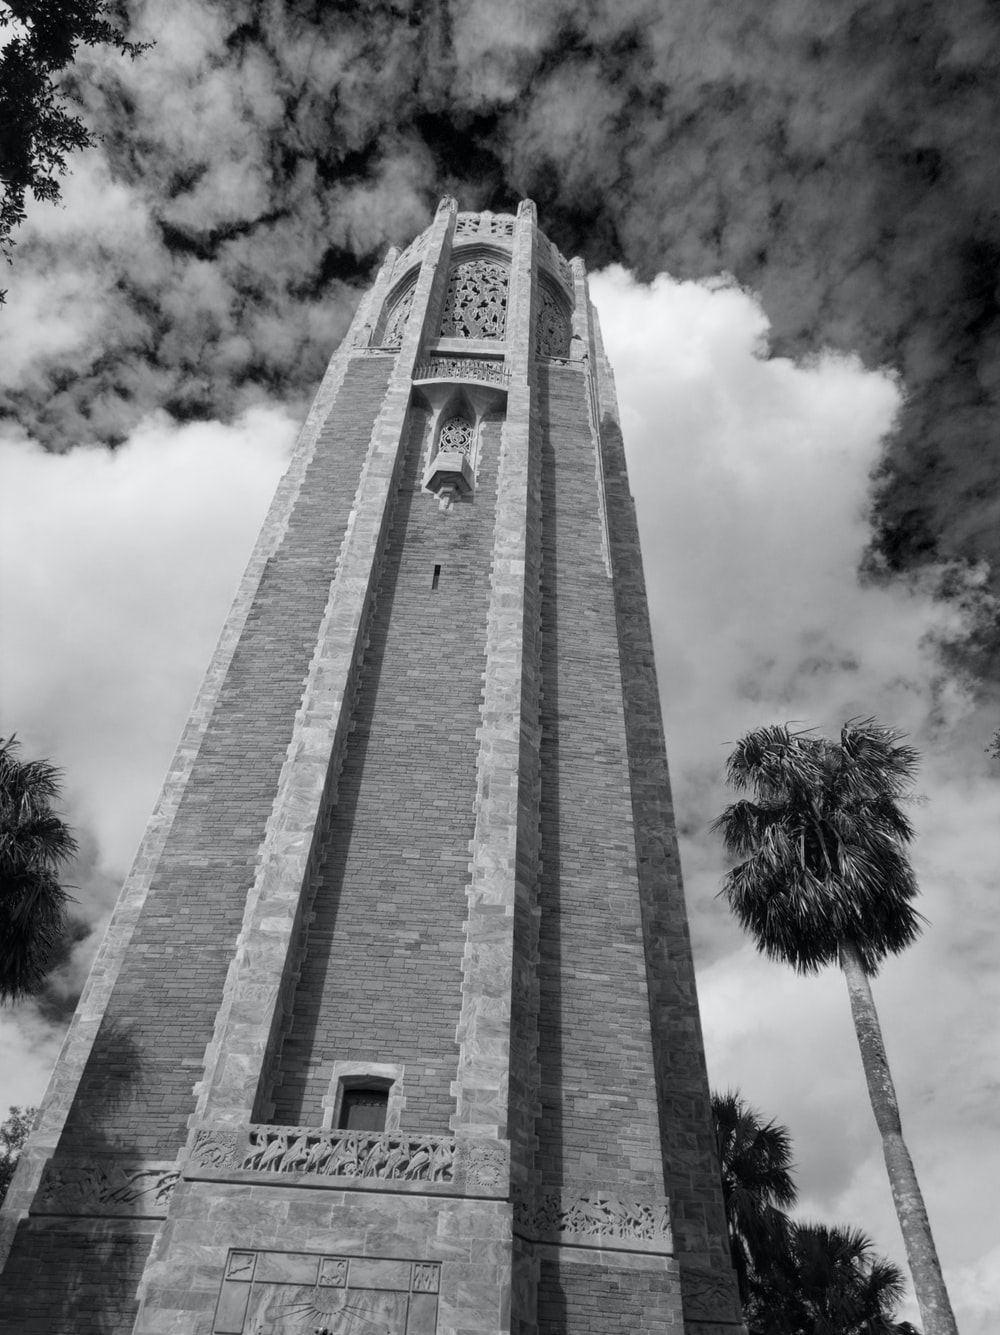 grayscrale photography of concrete tower